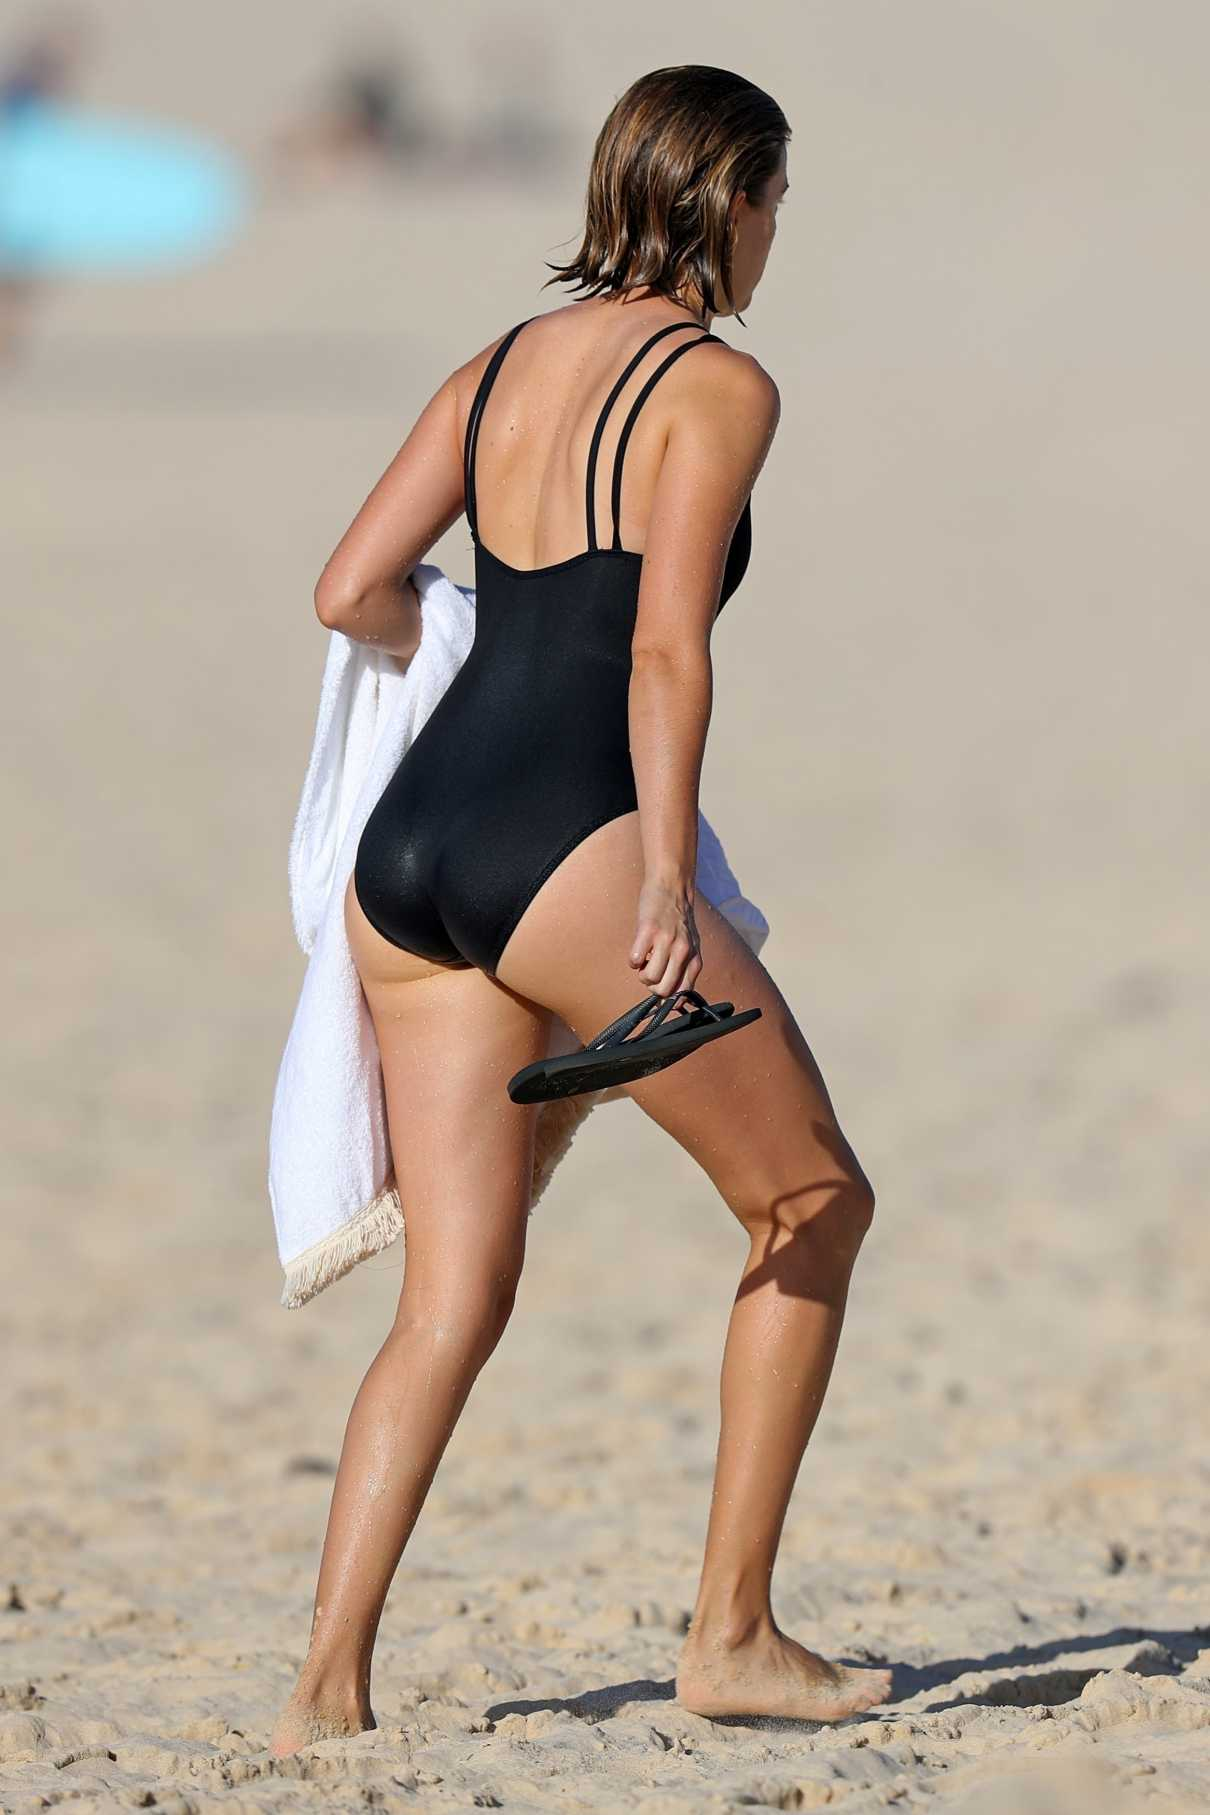 Victoria Lee in a Black Swimsuit